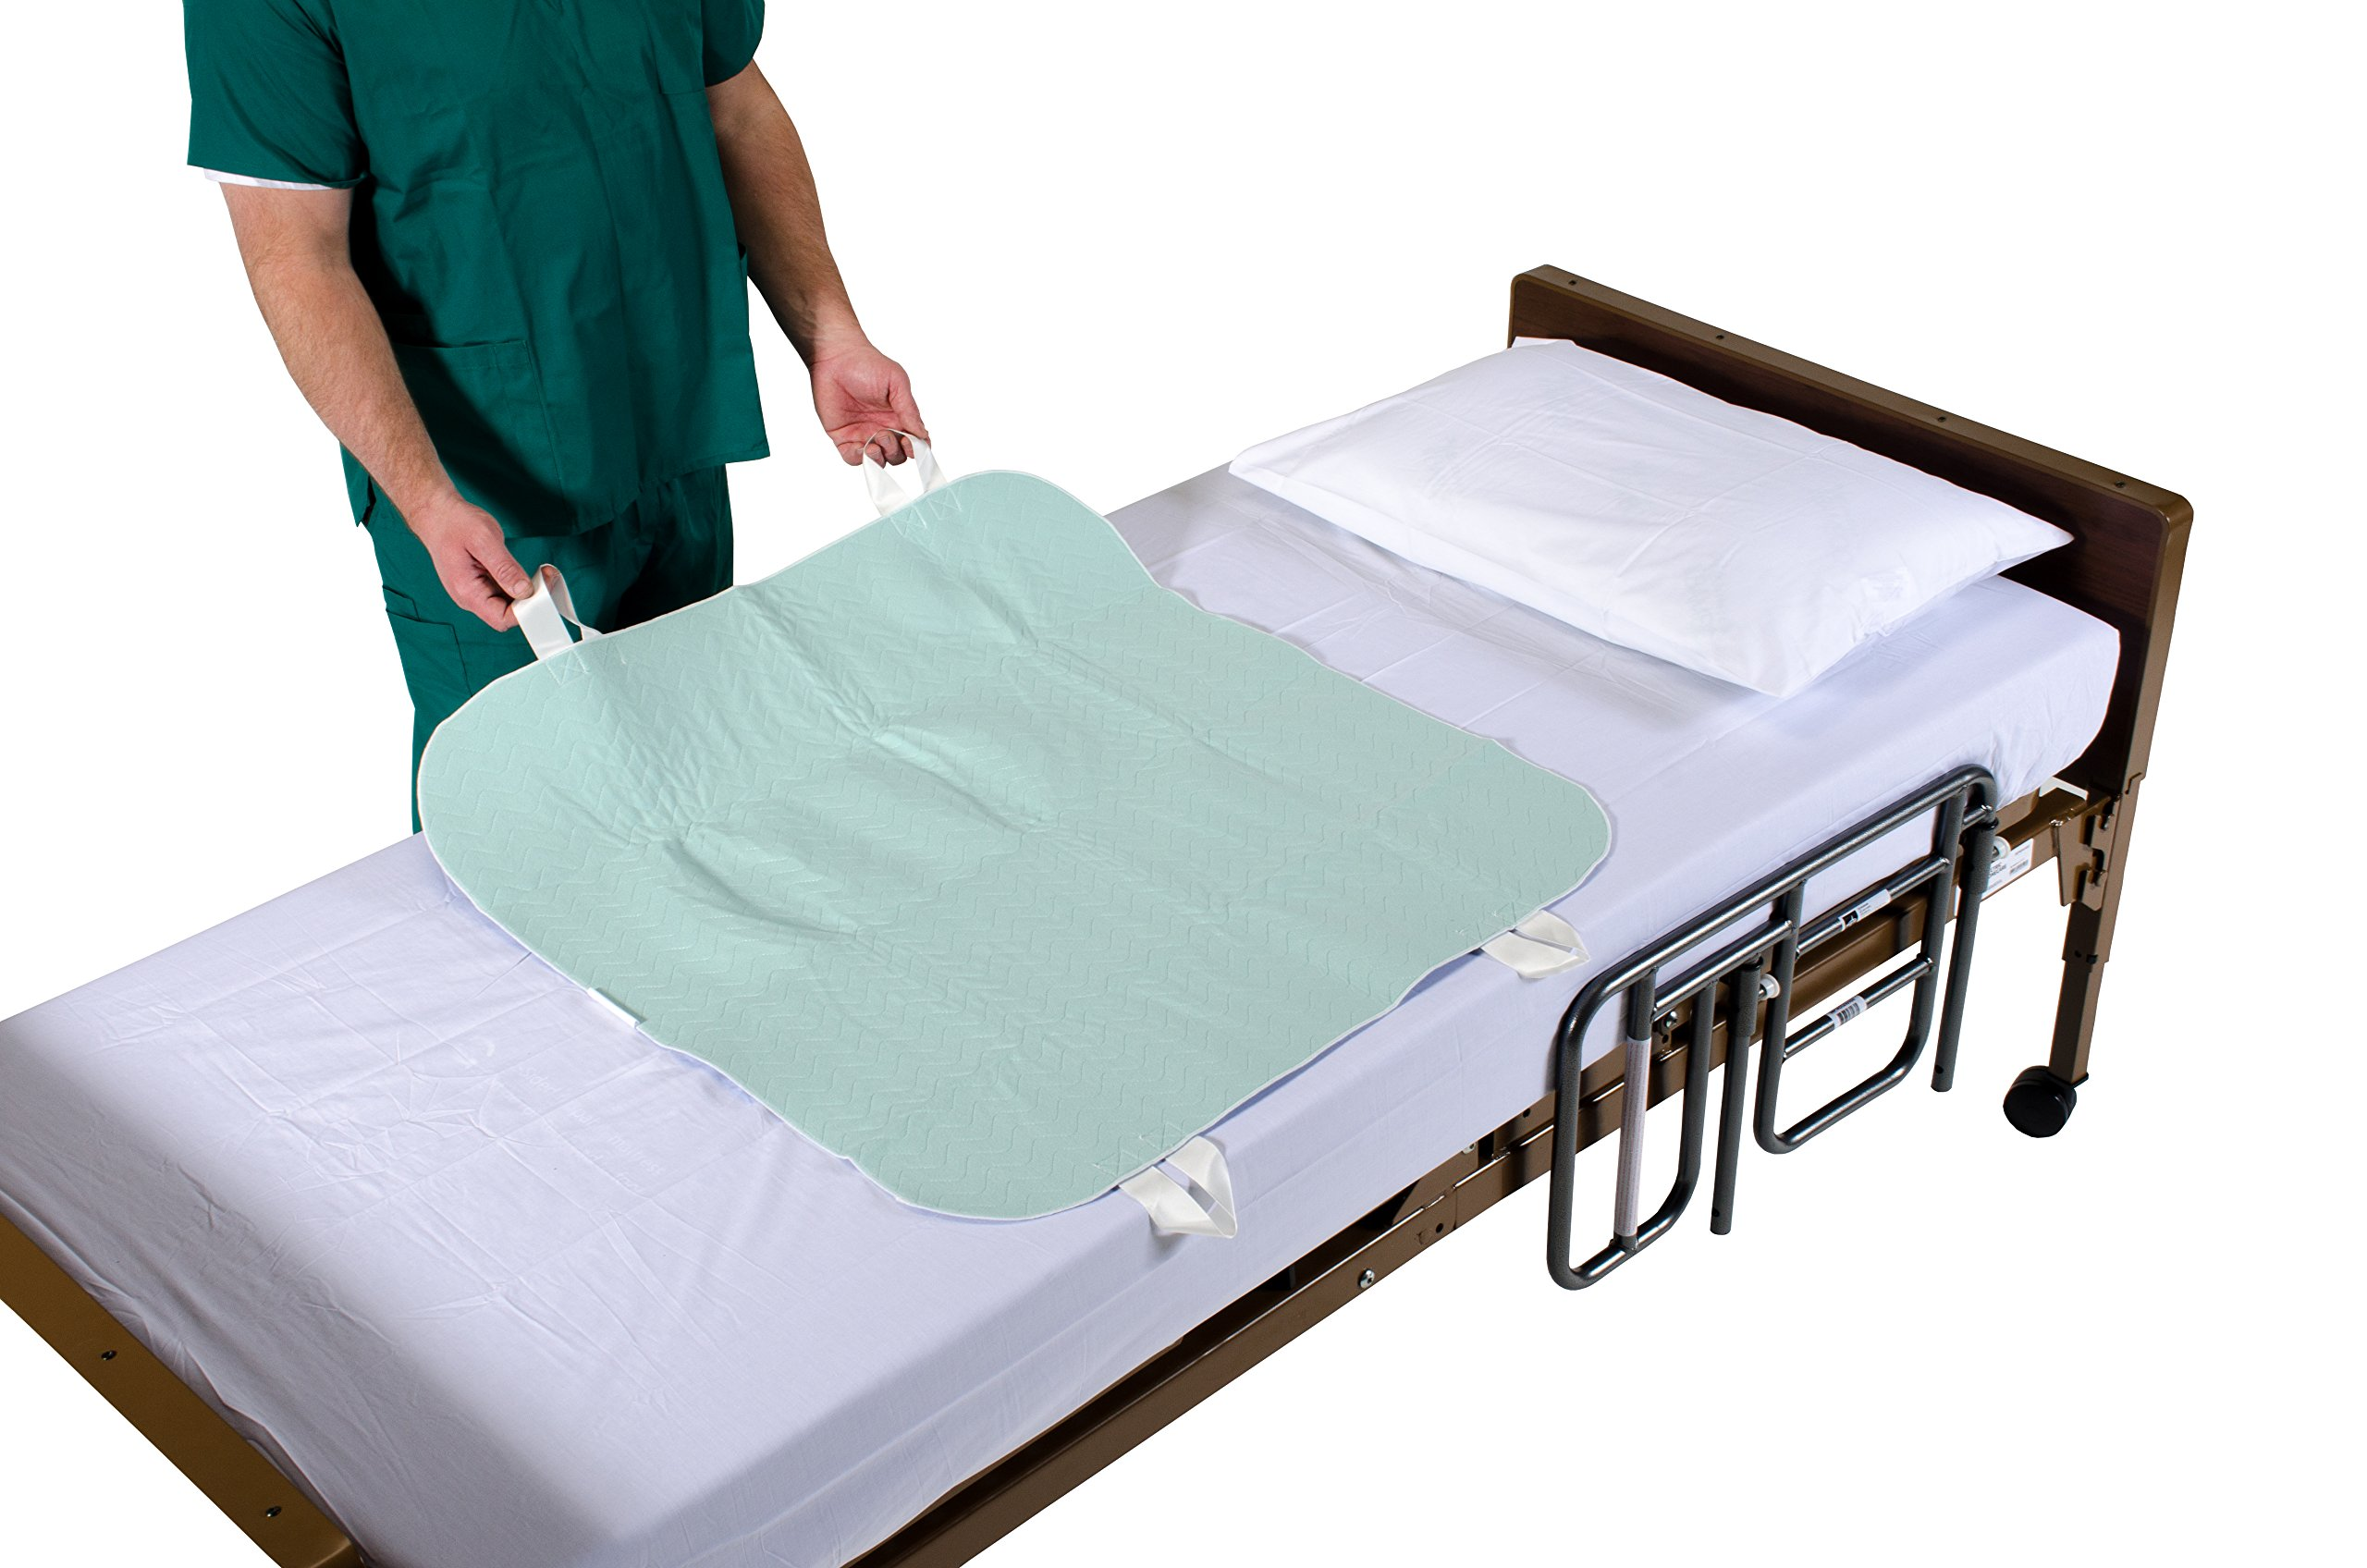 Positioning Bed Pad with Handles, Incontinence Mattress Bedding Protector Liner Underpad with Straps for Easy Lift Transfer – Reusable, Washable, Waterproof Hospital Quality Medical Supplies 34'' x 36'' by Patient Aid (Image #2)